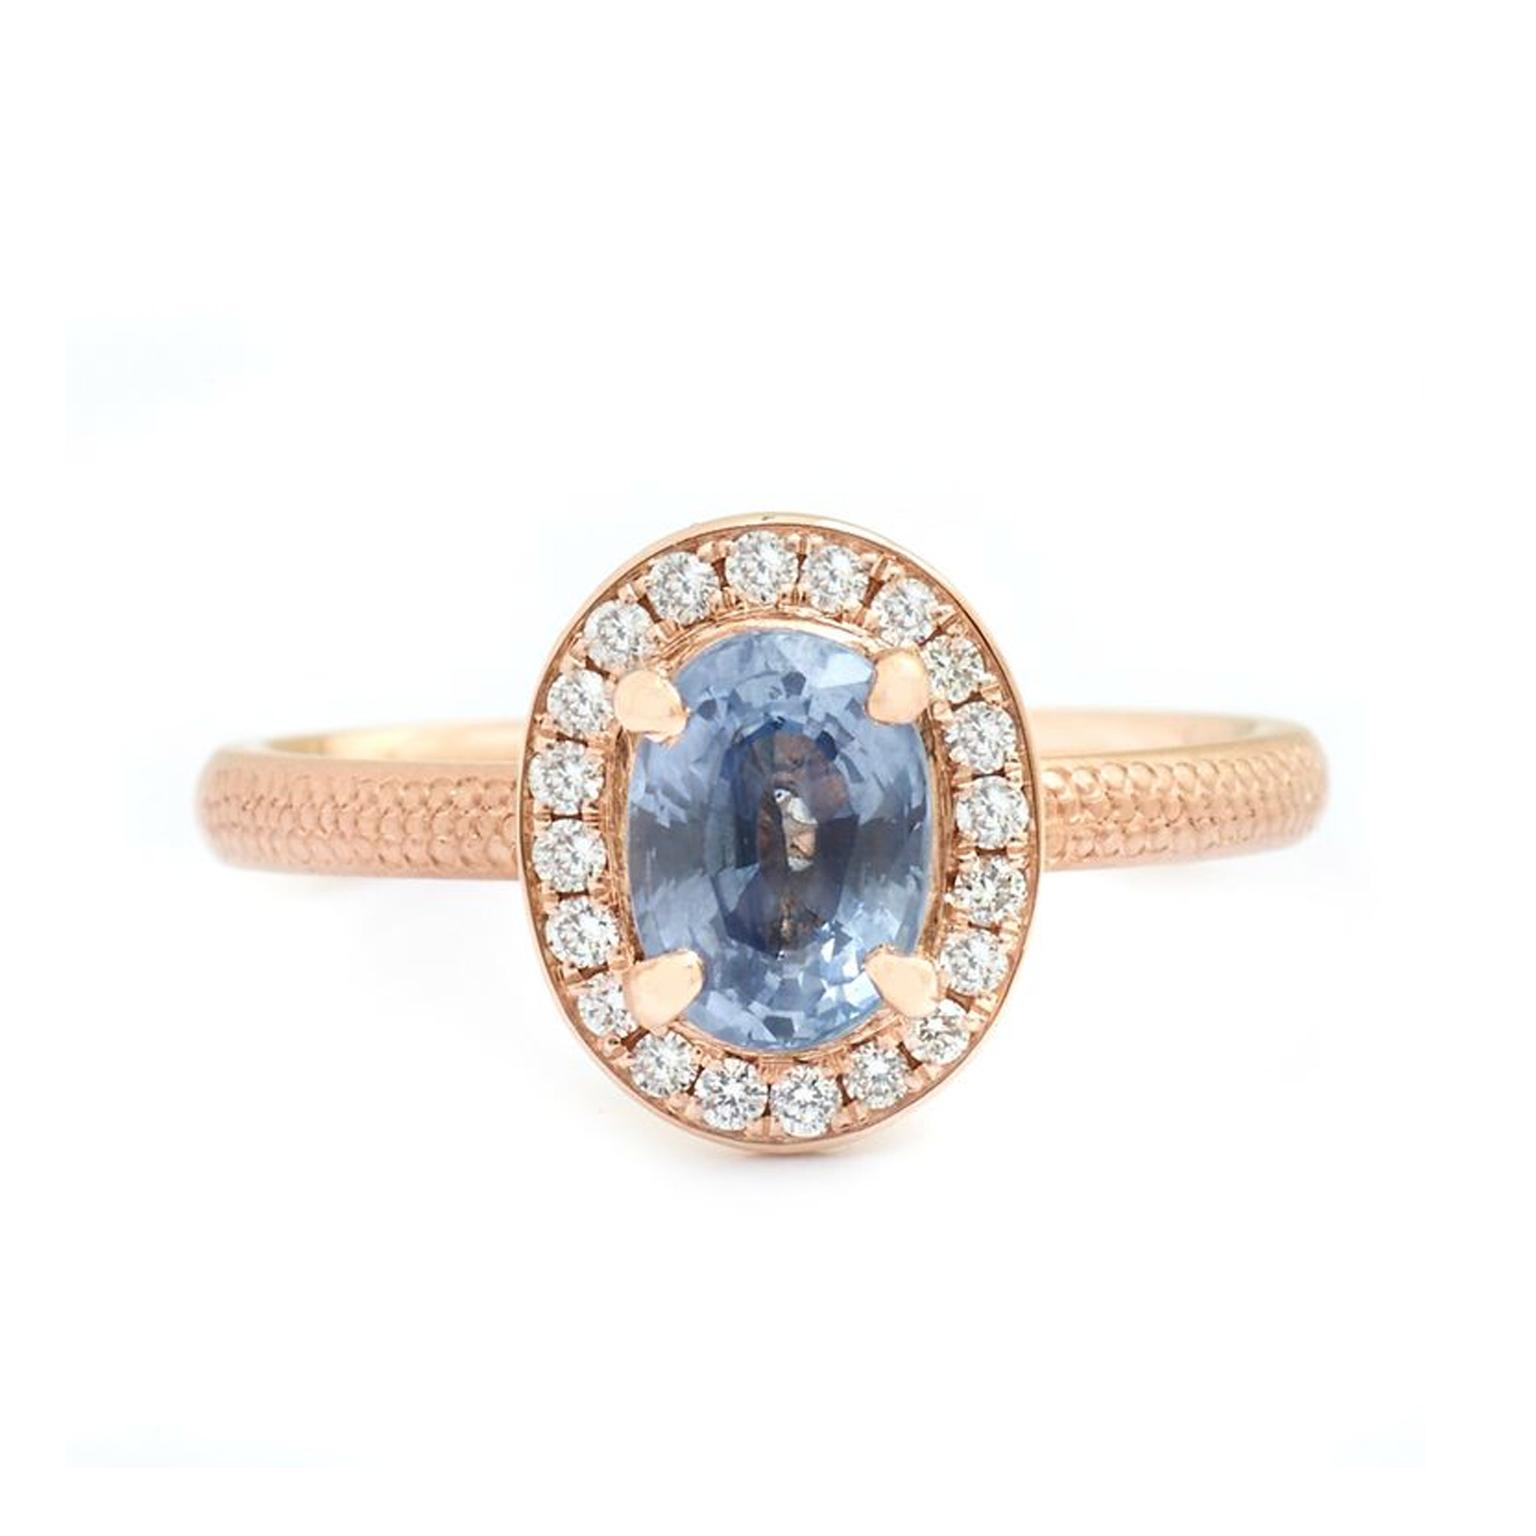 stone ctw gold light white metal center emitter render floor sapphire aqua shop marquise halo ring prong engagement round blue with